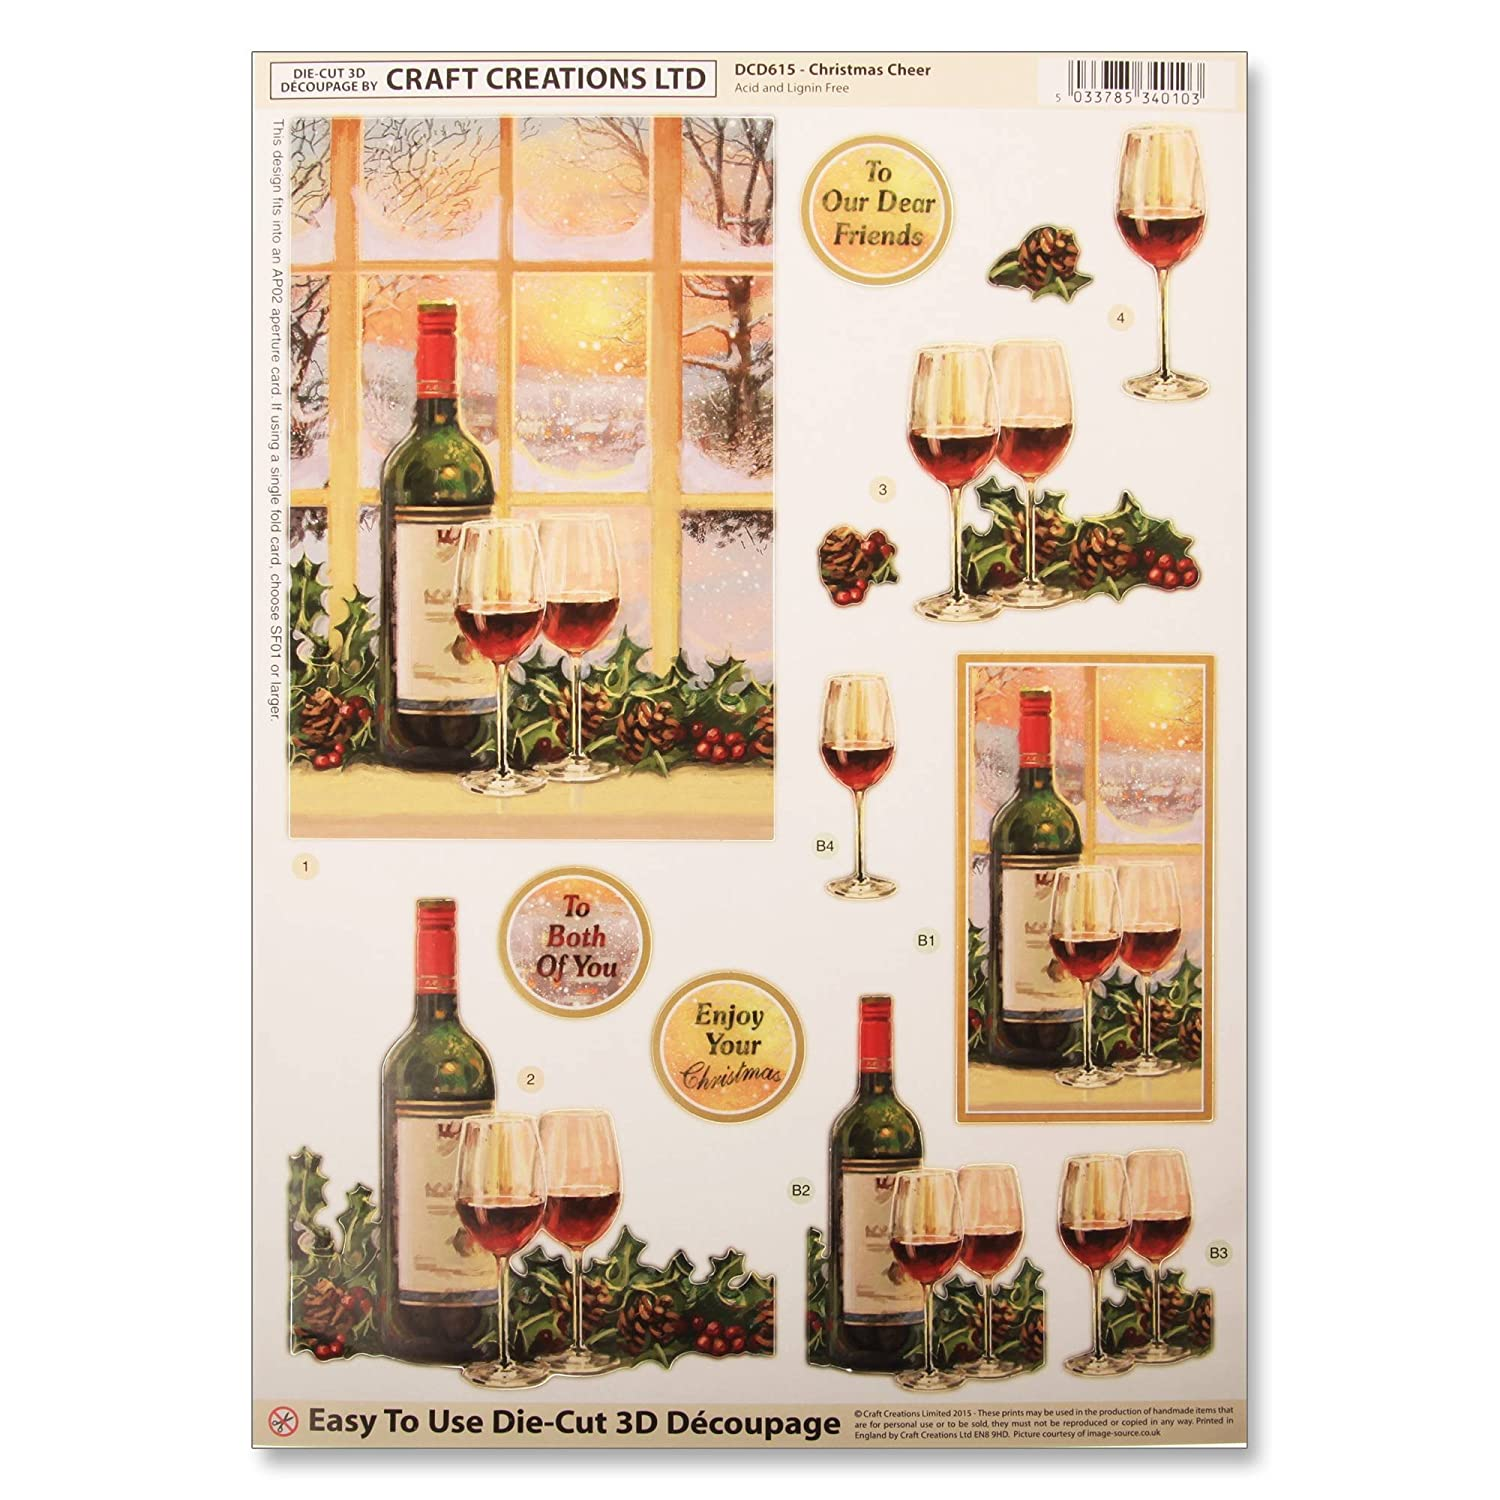 Craft Creations Christmas Die-Cut 3D Decoupage - DCD615 Christmas Cheer - Snow Window Wine - A4 210x297mm - Step-By-Step Layout Craft Creations Ltd